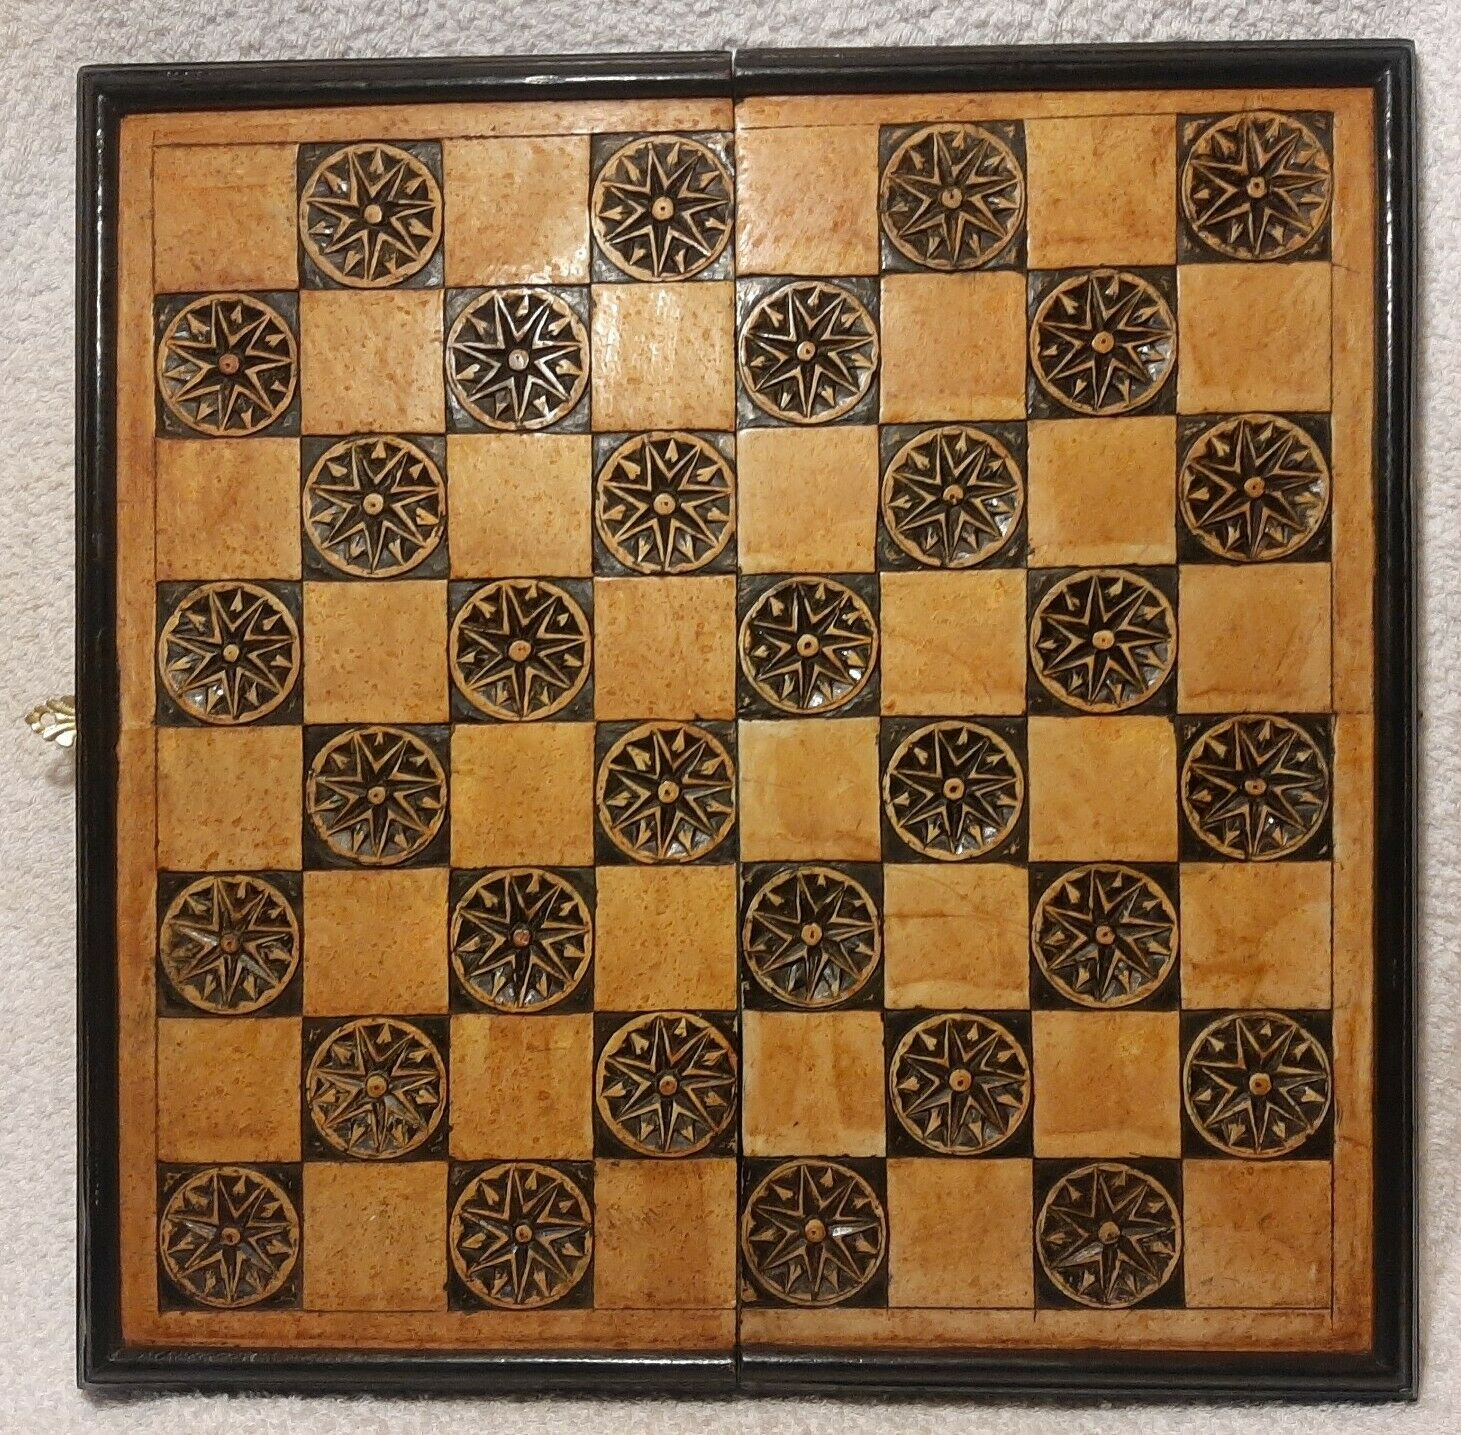 Vintage carved resin schwarz lacquer chessboard box case 41cm sq very heavy VGC